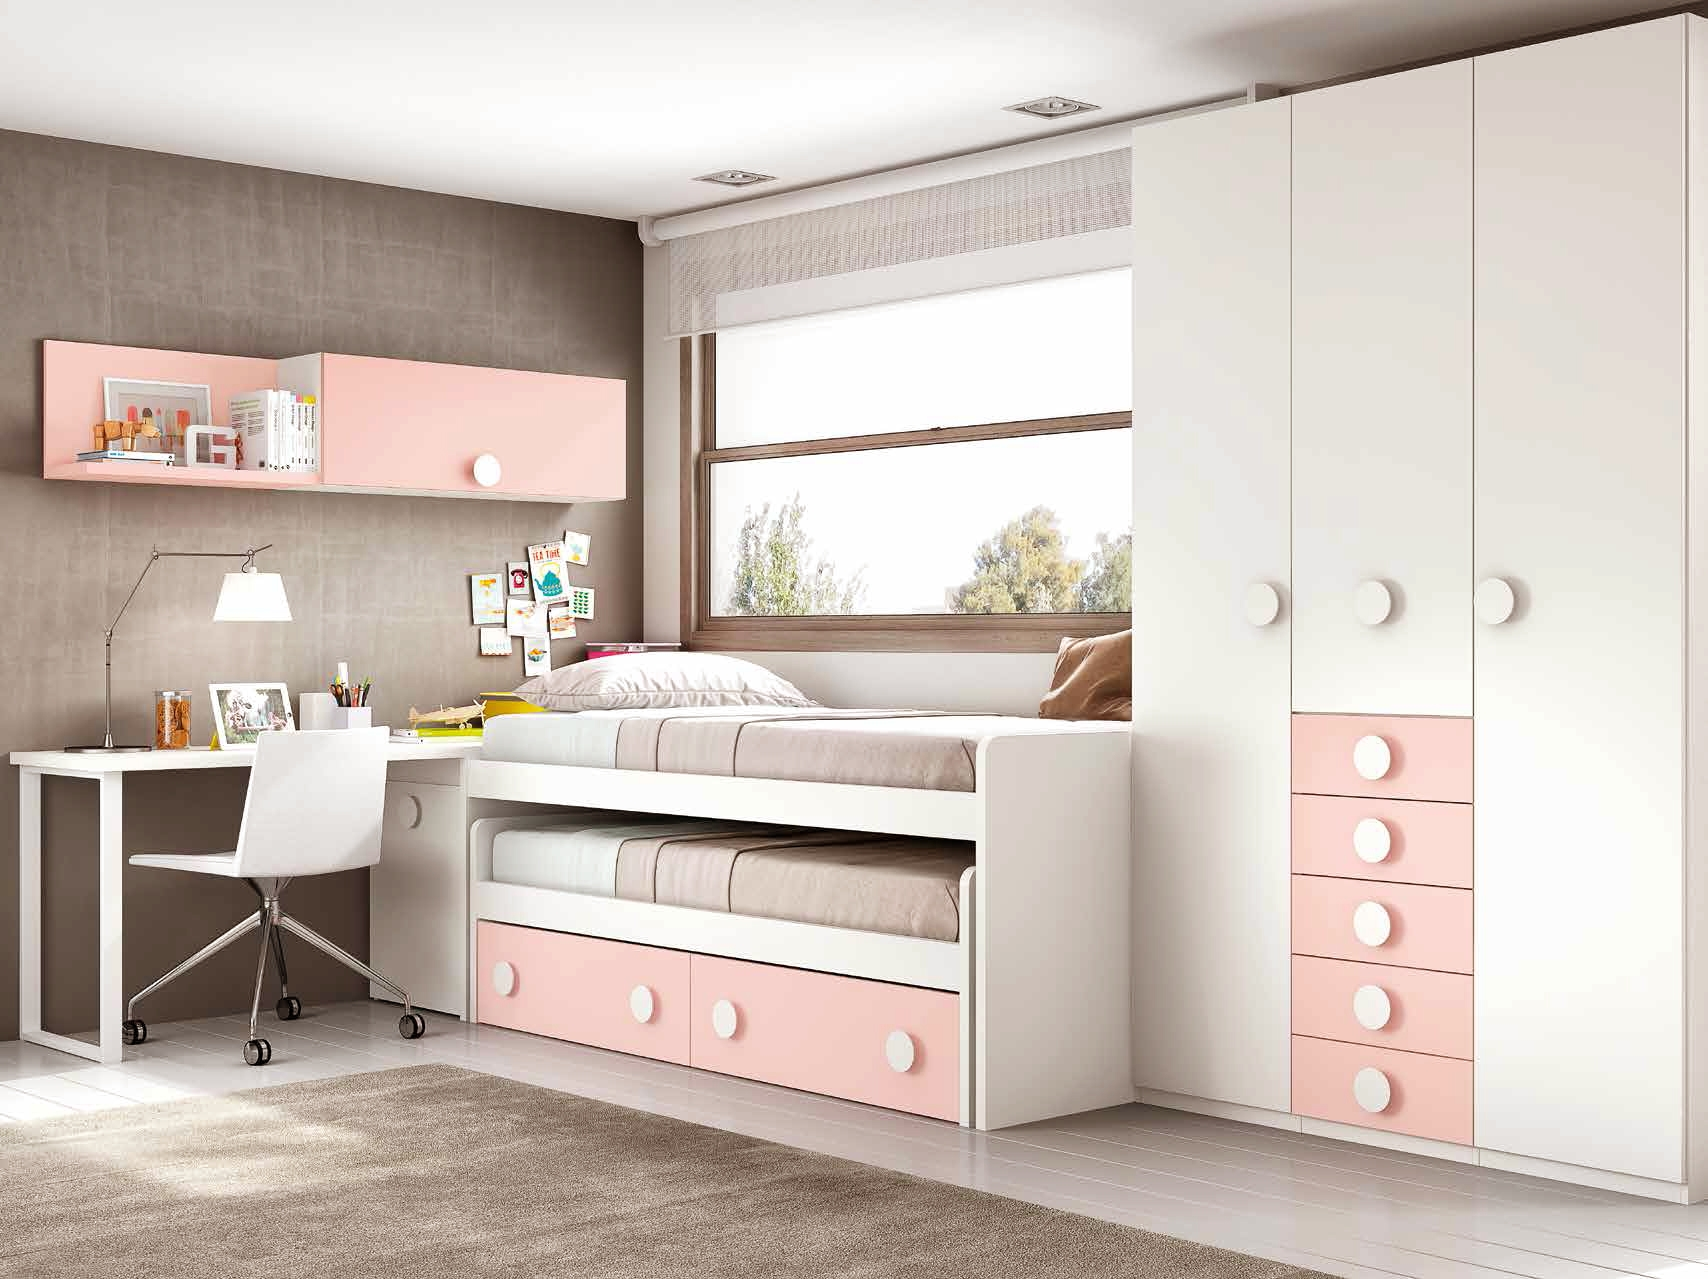 chambre fille ado avec un lit pratique fun glicerio so nuit. Black Bedroom Furniture Sets. Home Design Ideas